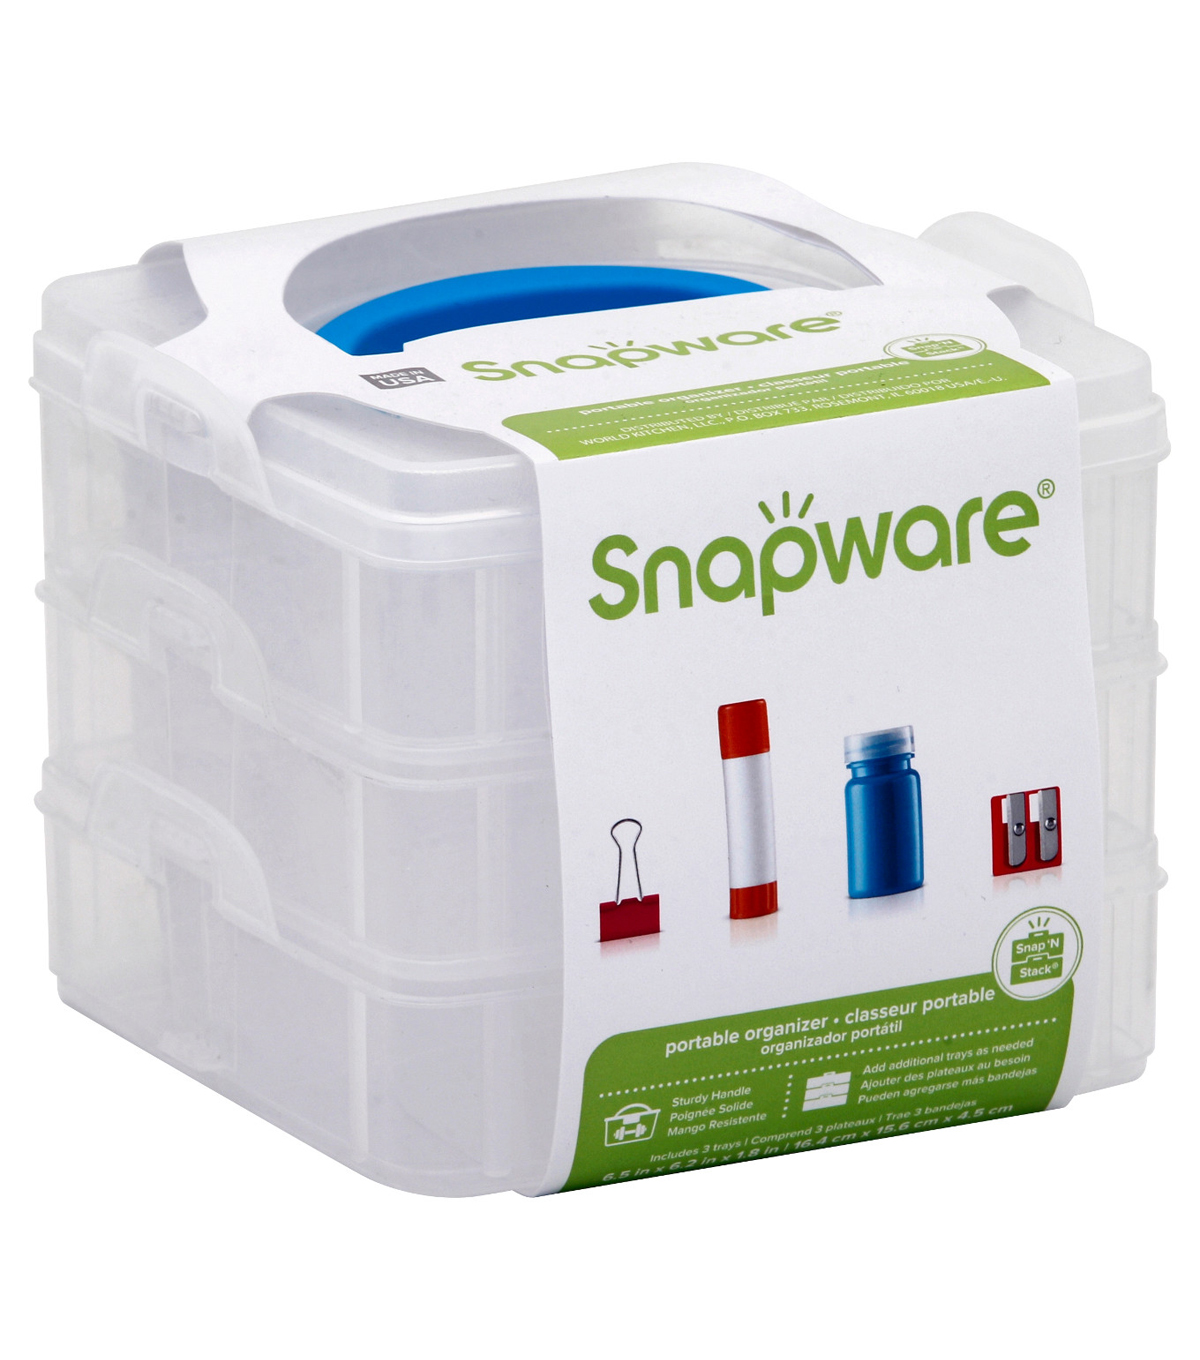 Snapware Snap N Stack 6x6 square 3 layers, 1 layer with divider